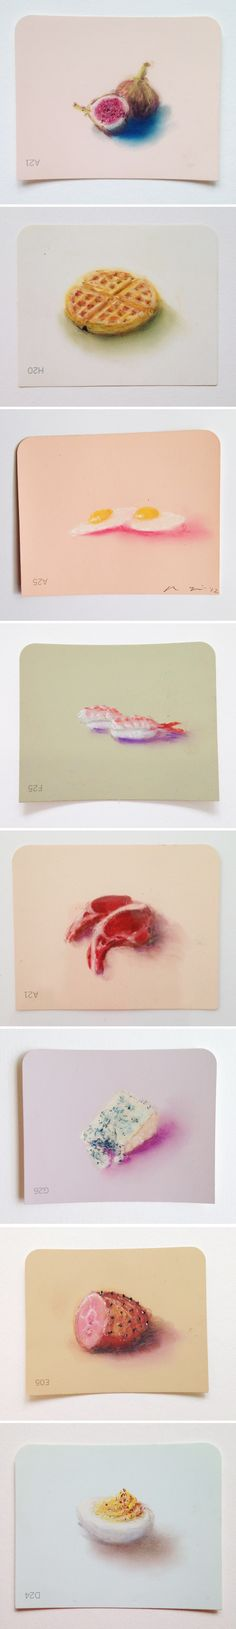 pastel drawings on martha stewart paint chips... work by mie yim <3